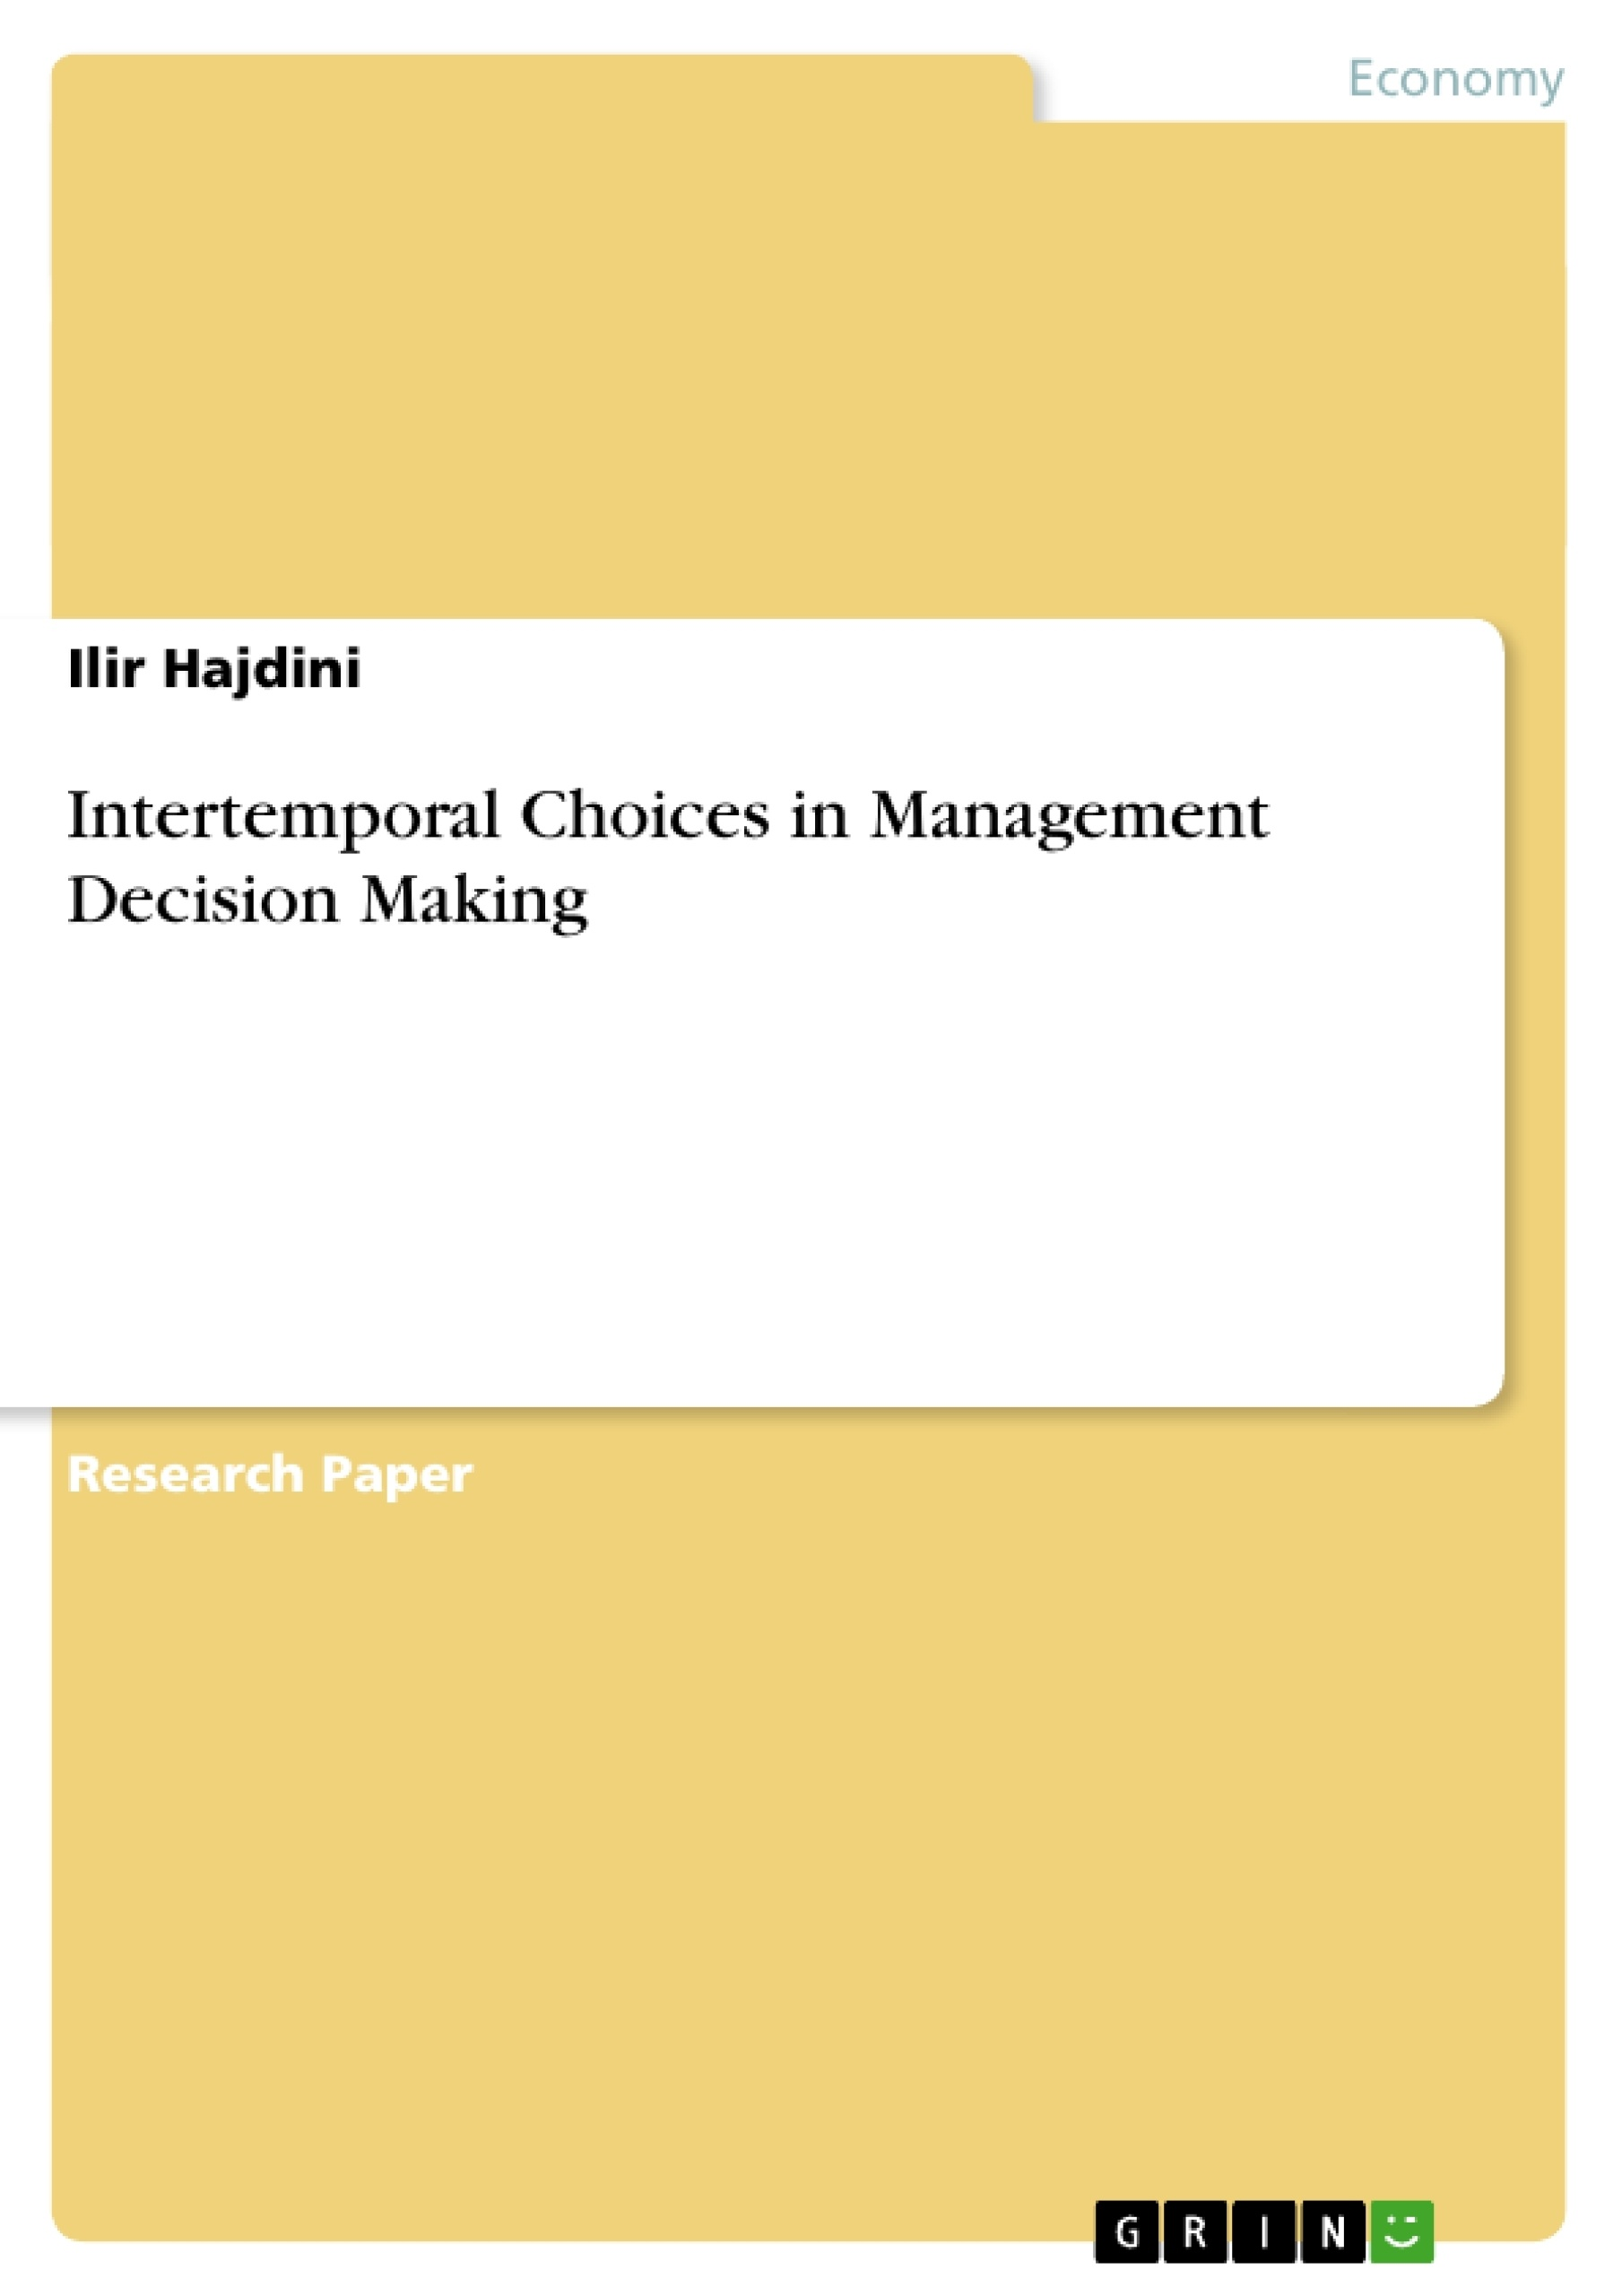 Title: Intertemporal Choices in Management Decision Making